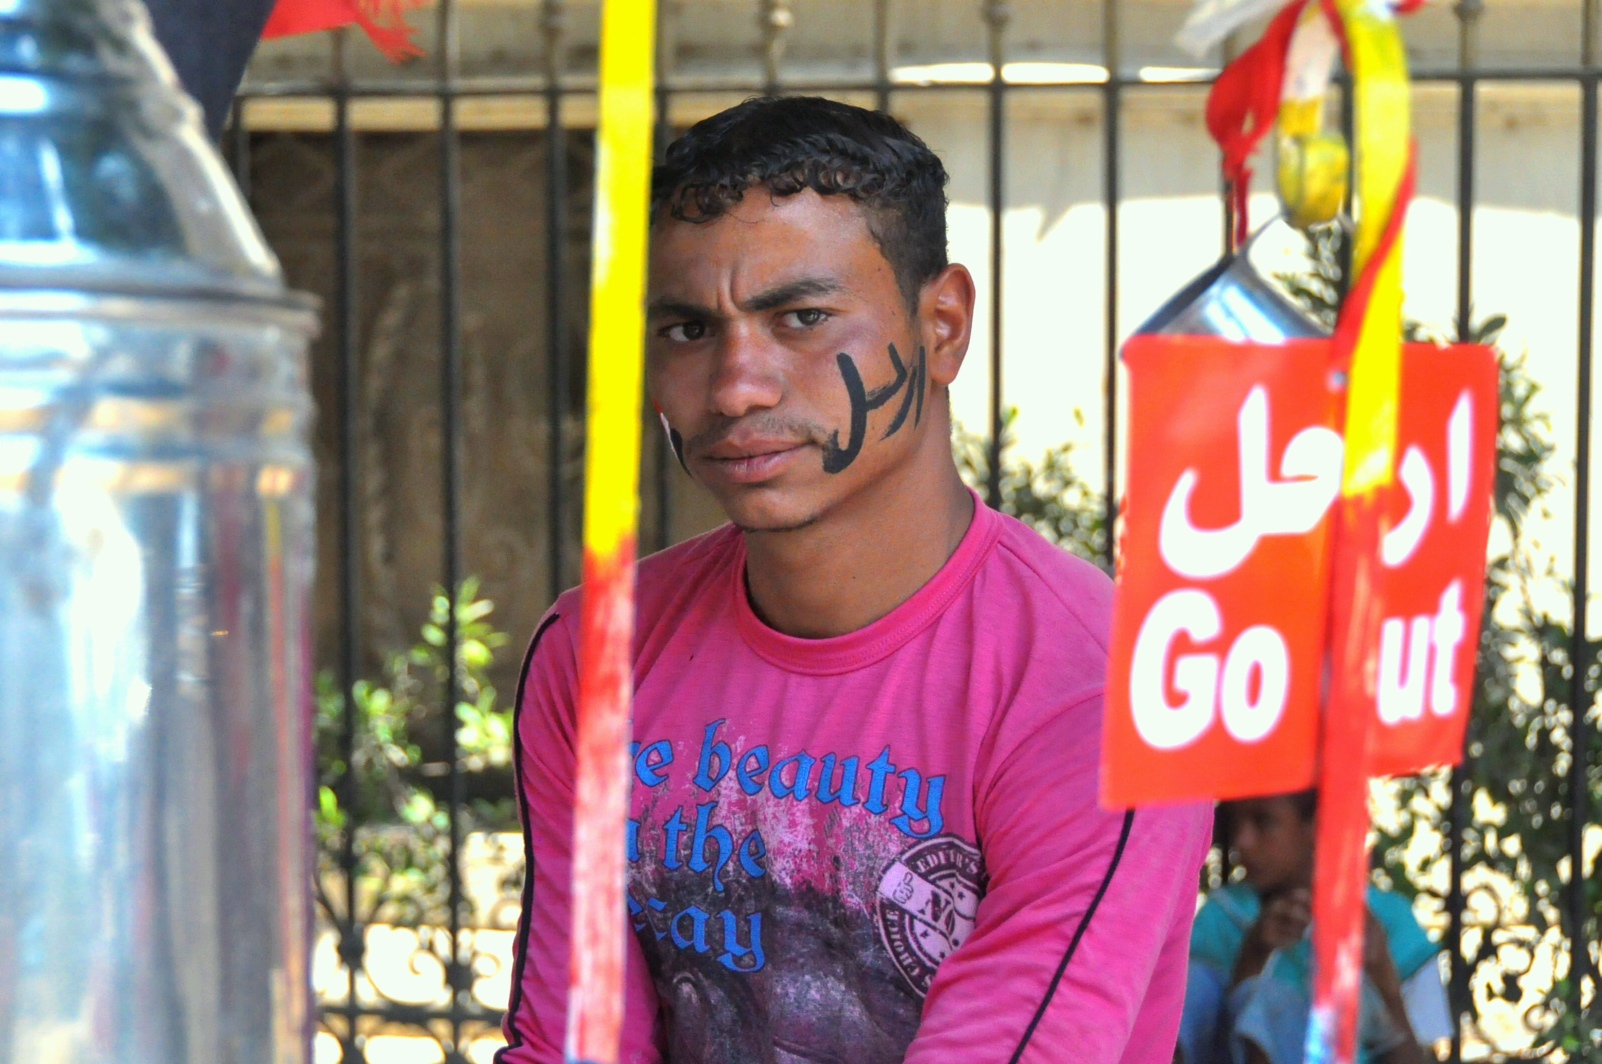 Vendor in Tahrir Square has decorated his cheeks with the word Erhal, Leave 1 July (Photo by Aaron T. Rose)